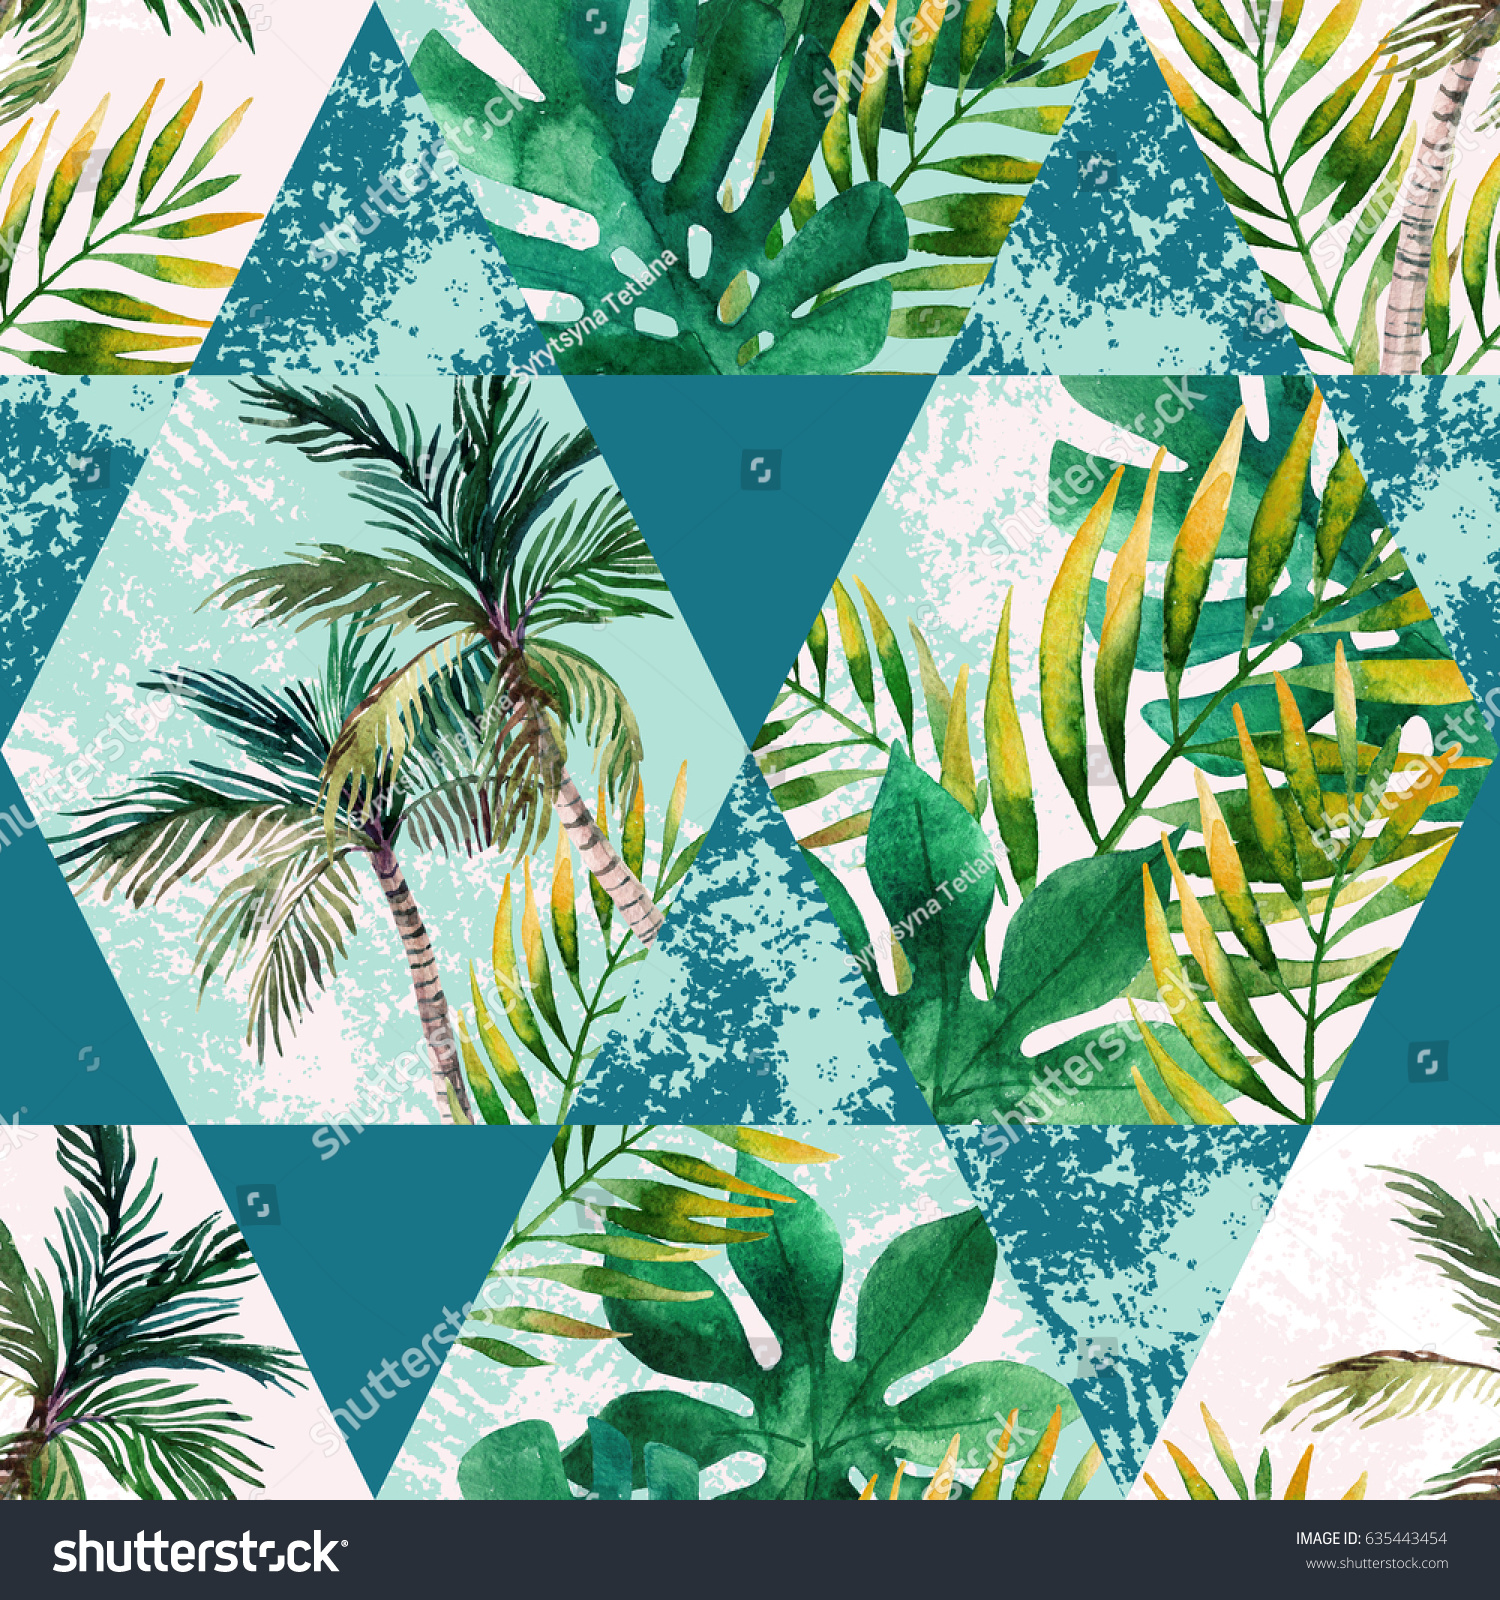 Watercolor Tropical Leaves Palm Trees Geometric Stock Illustration ...